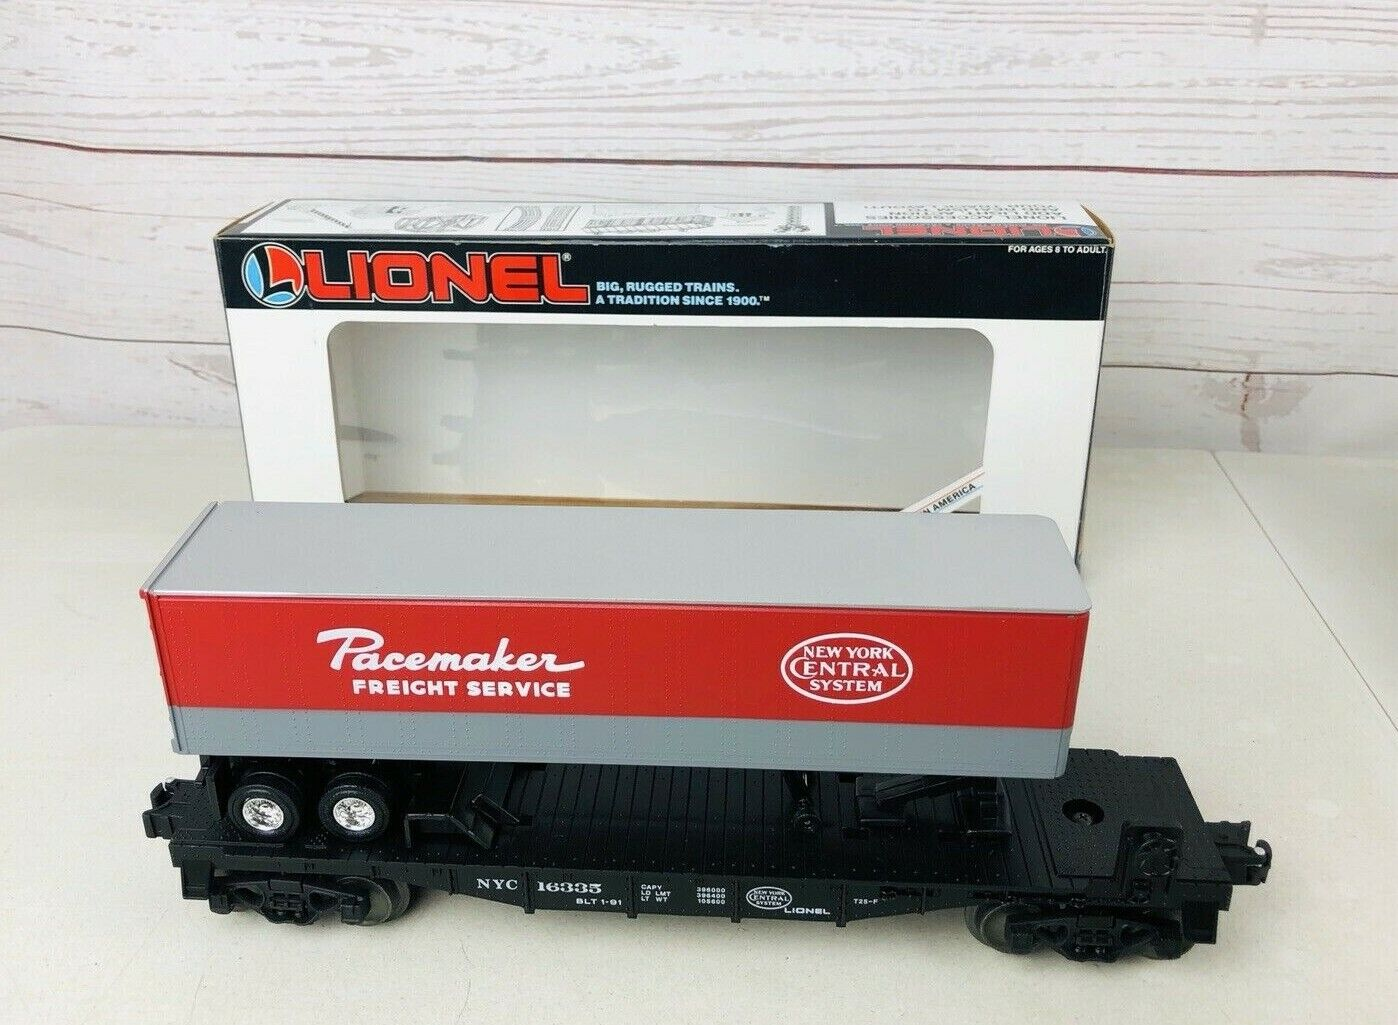 LIONEL O SCALE NEW YORK CENTRAL NYC FLATCAR WITH PACEMAKER TRAILER  6-16335